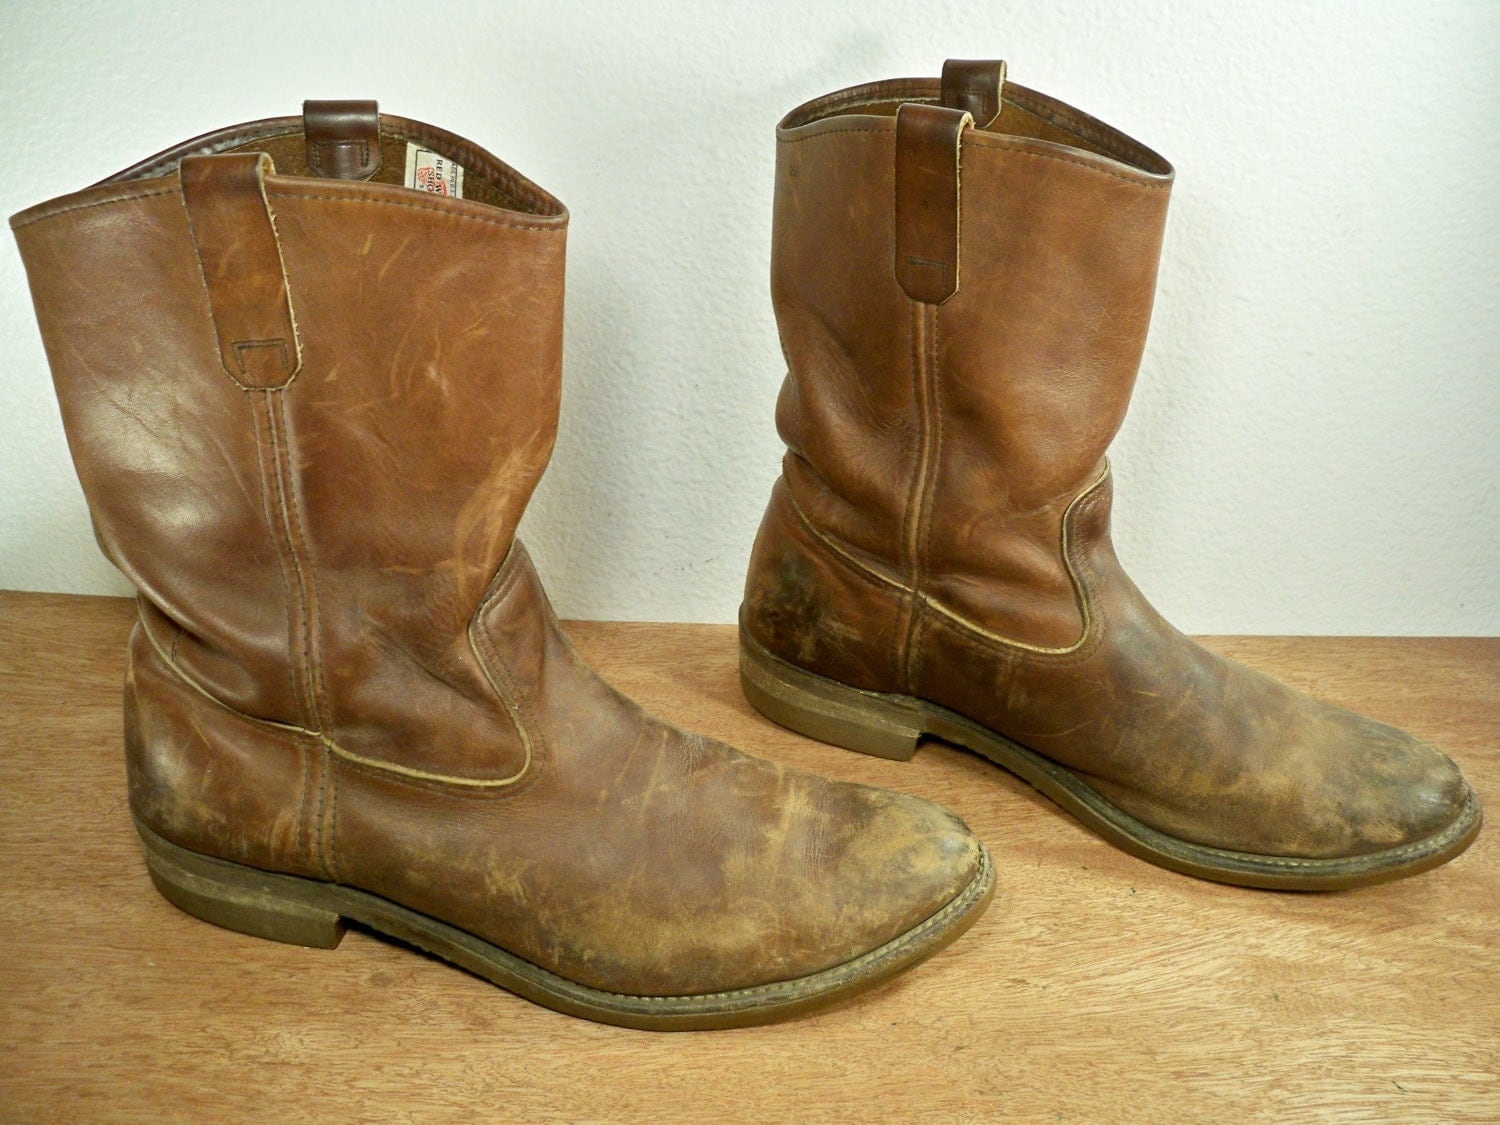 Vintage Red Wing Pecos Motorcycle Biker Riding Non Steel Toe